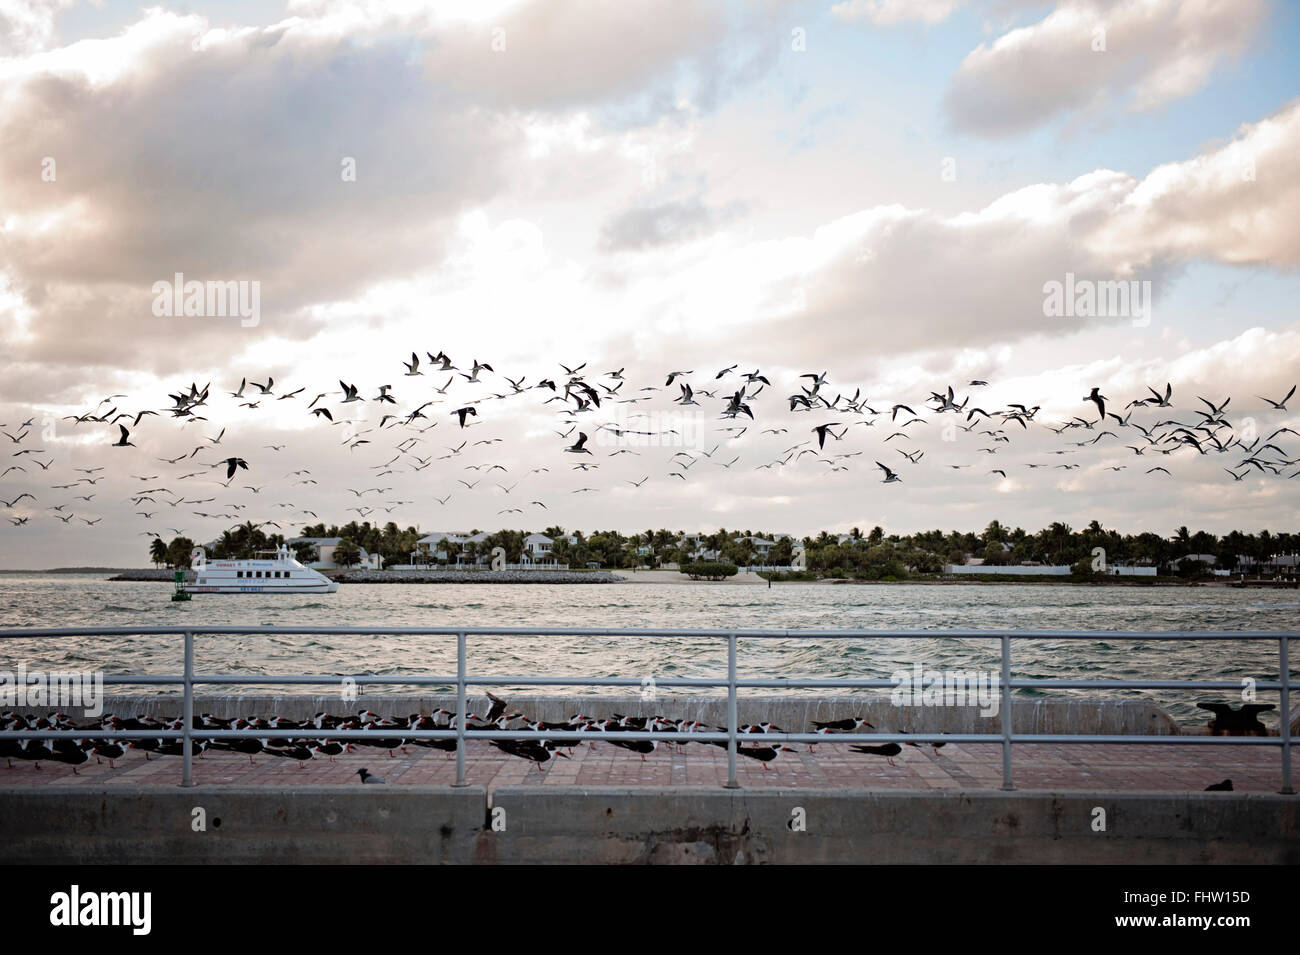 View from Mallory Square - Seagulls - Stock Image